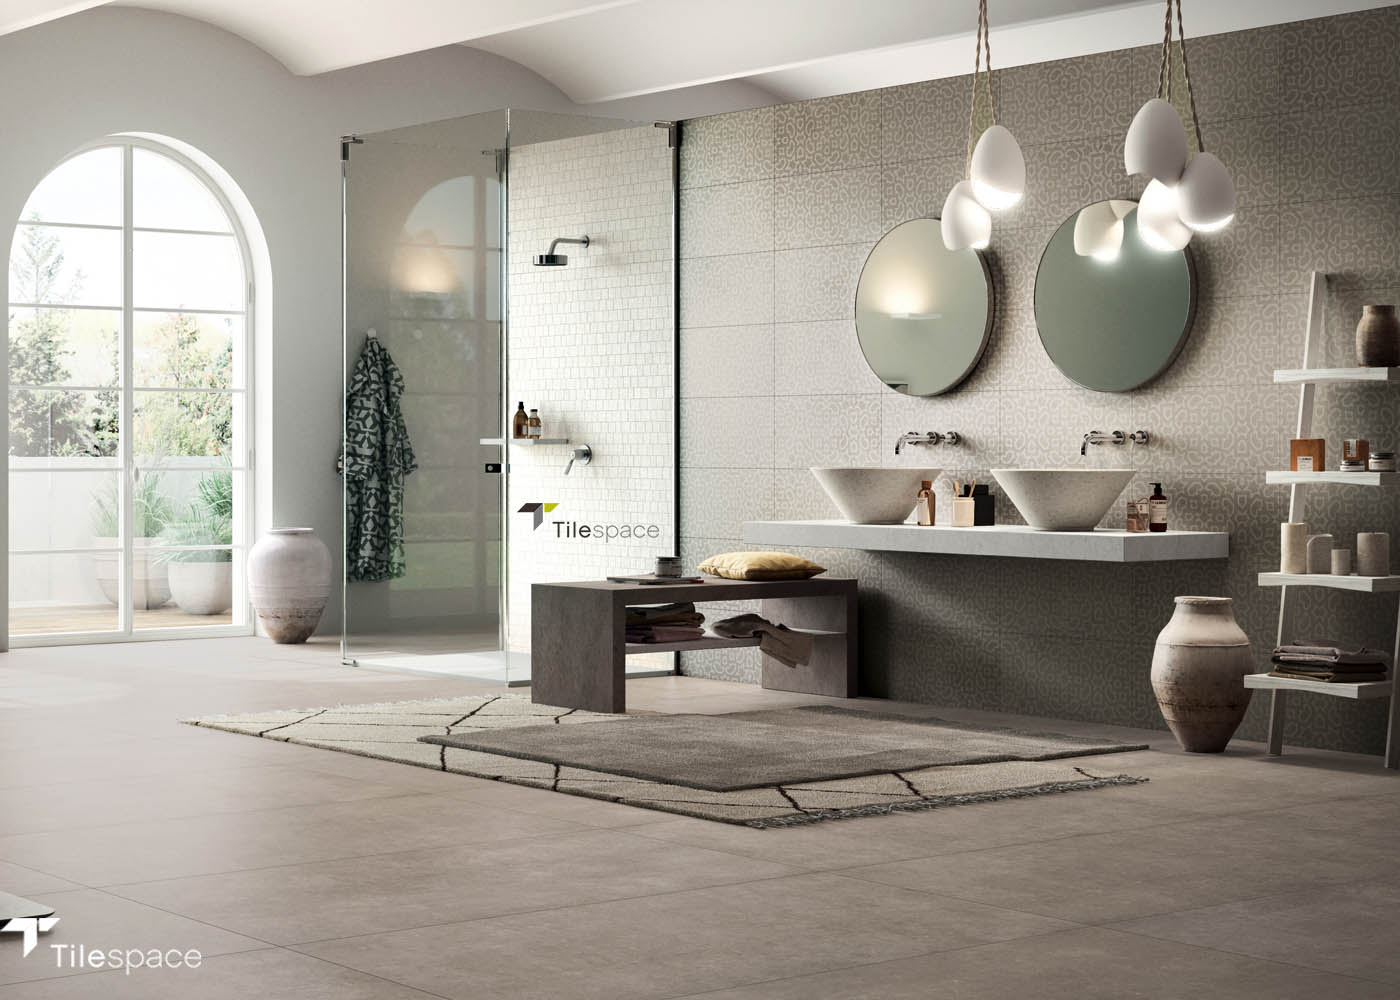 Top 5 Materials For Bathroom Tiles Bathroom Tile Cape Town